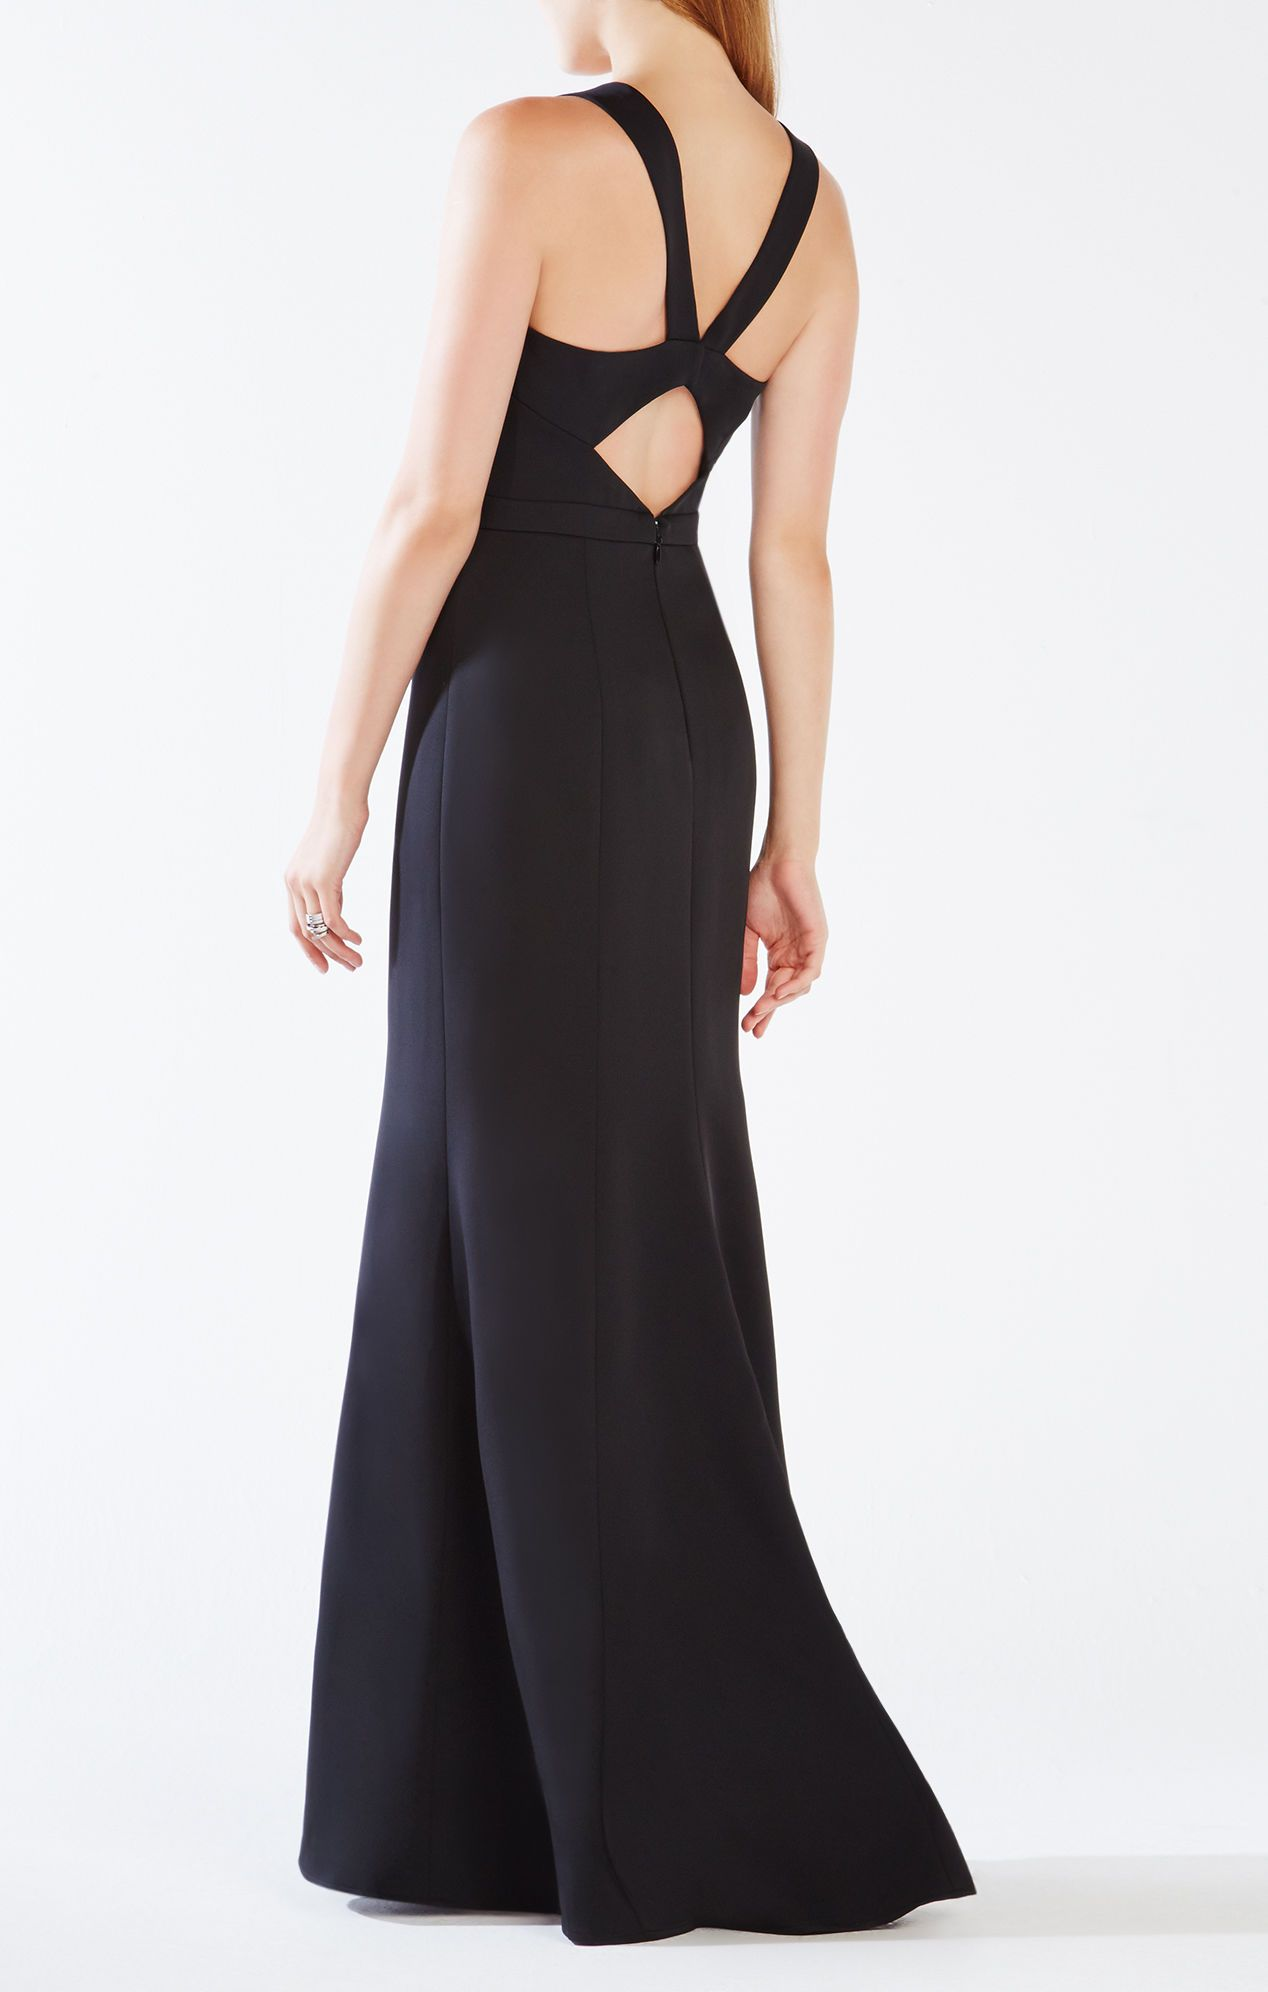 Riva Cutout Gown | Dresses I Love!<3 | Pinterest | Gowns and Clothes